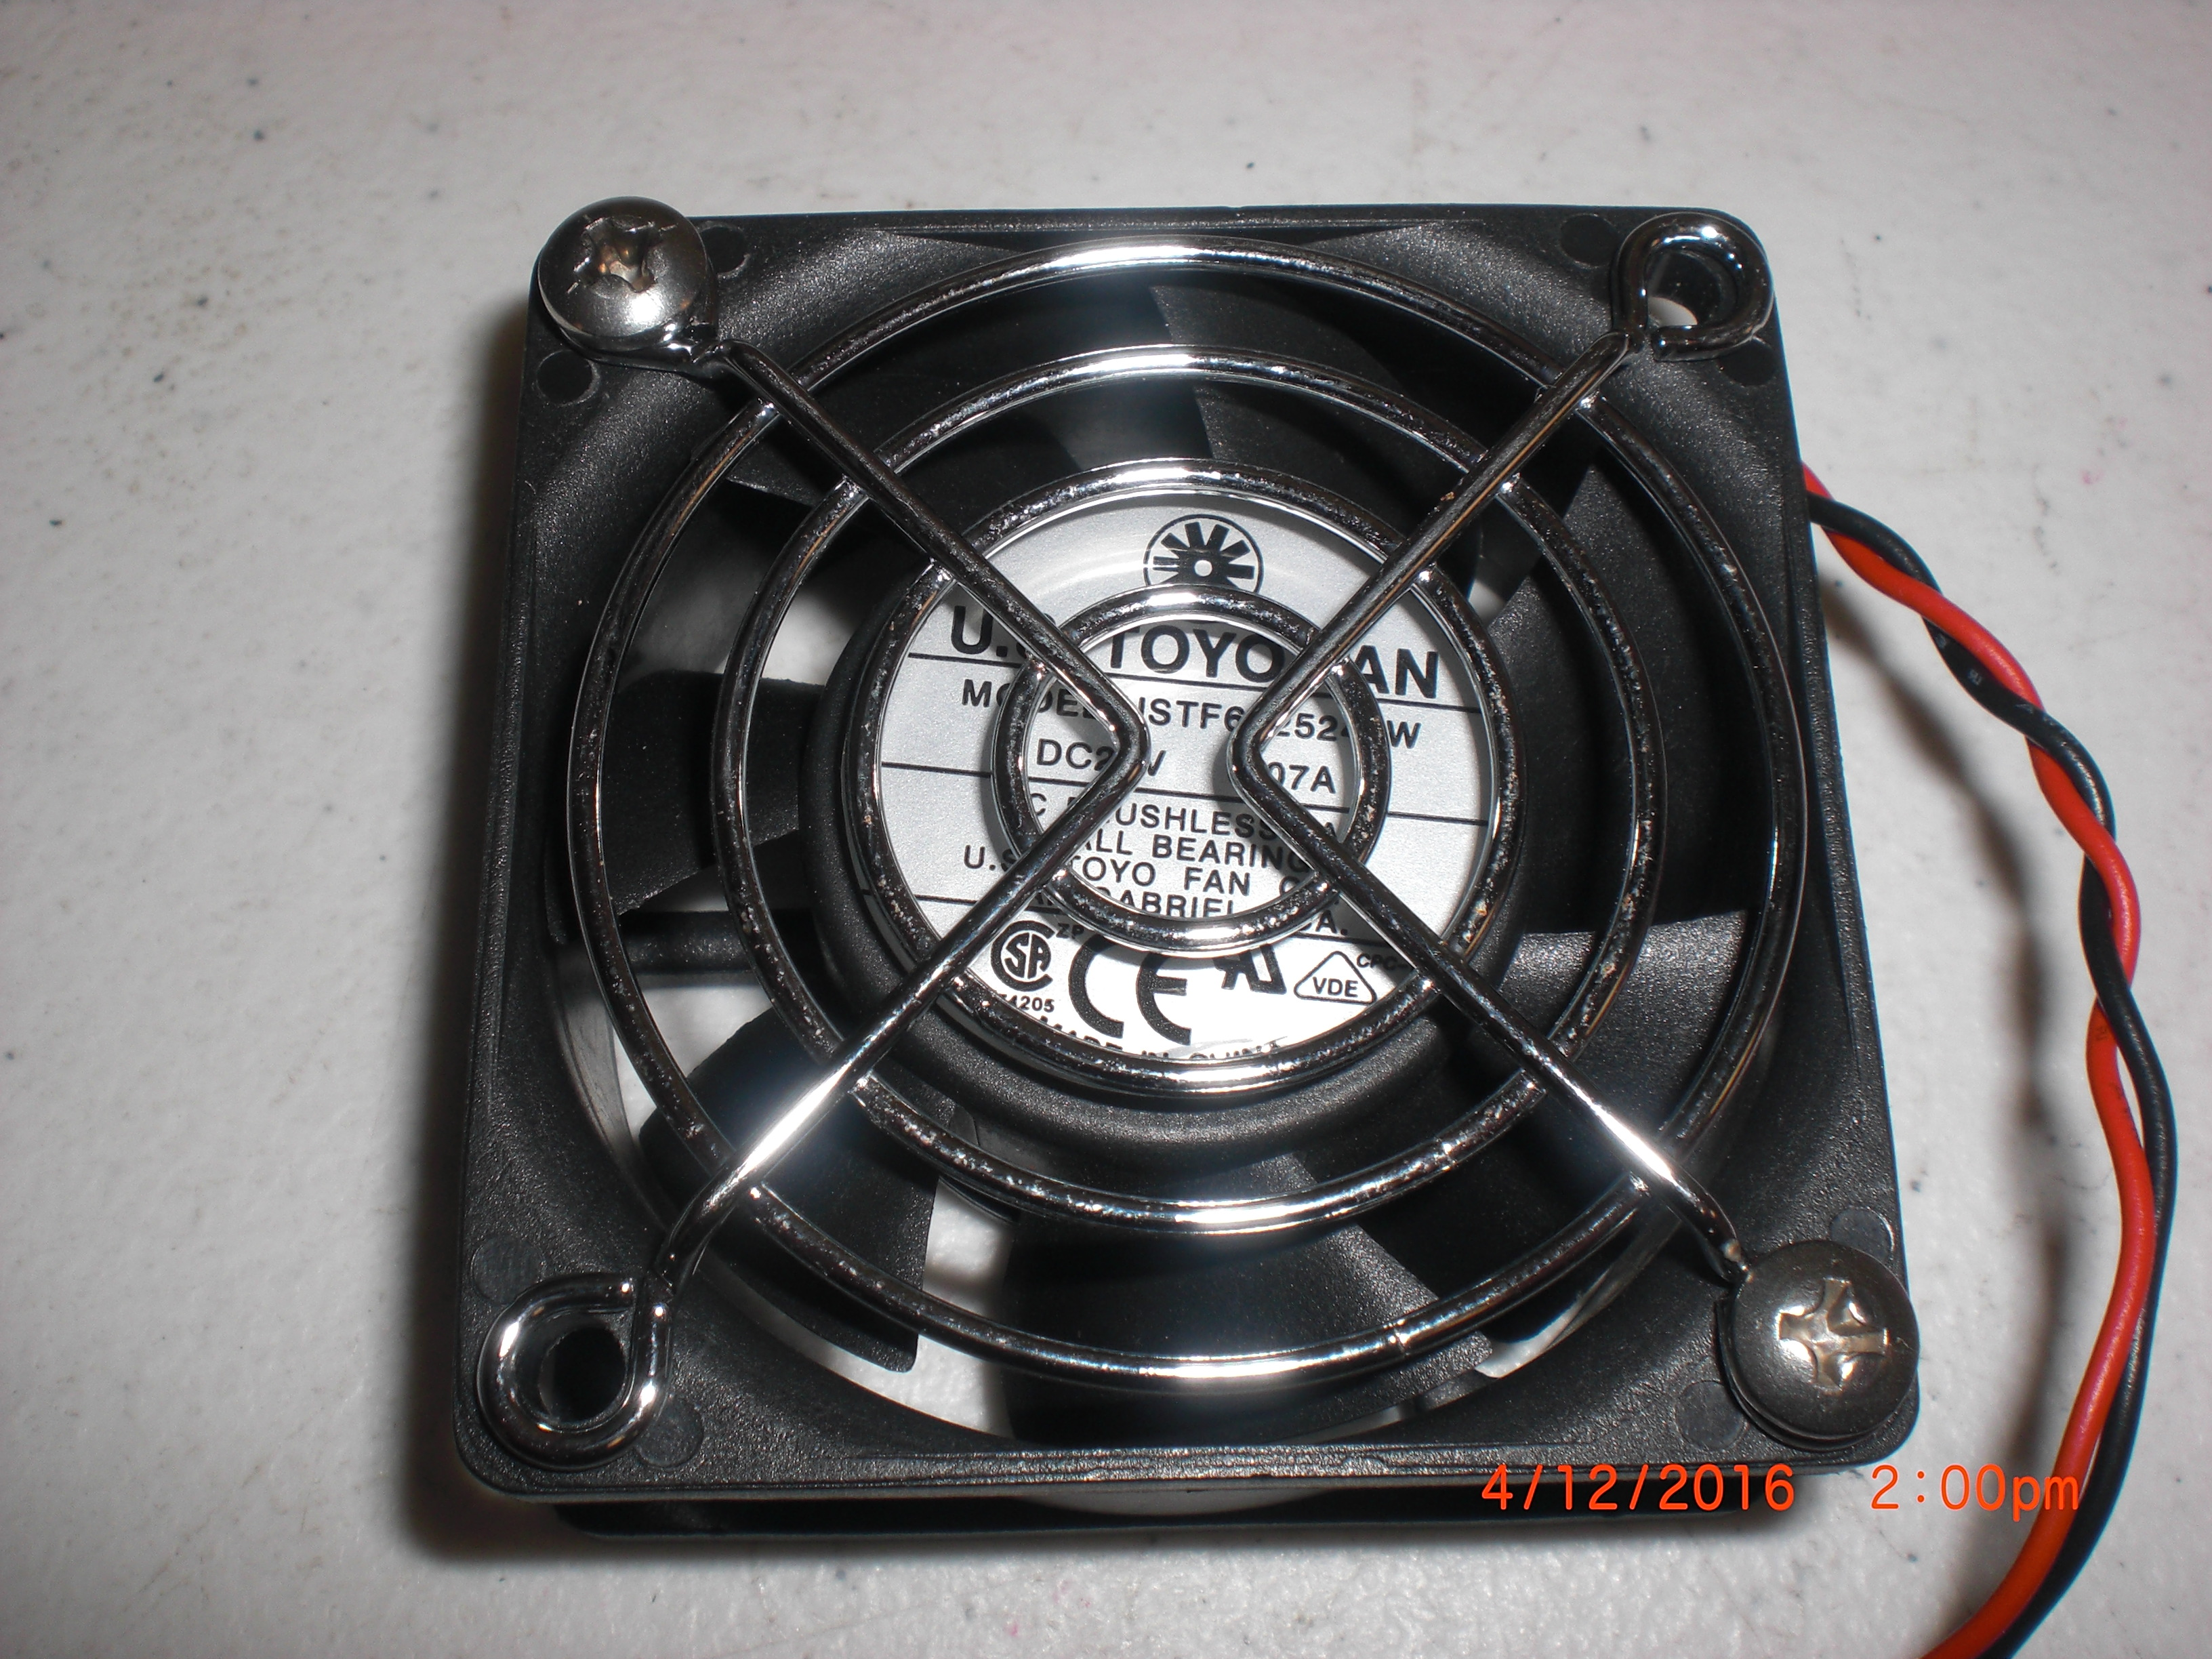 Fan  Muffin 24VDC US TOYO FAN USTF602524LW